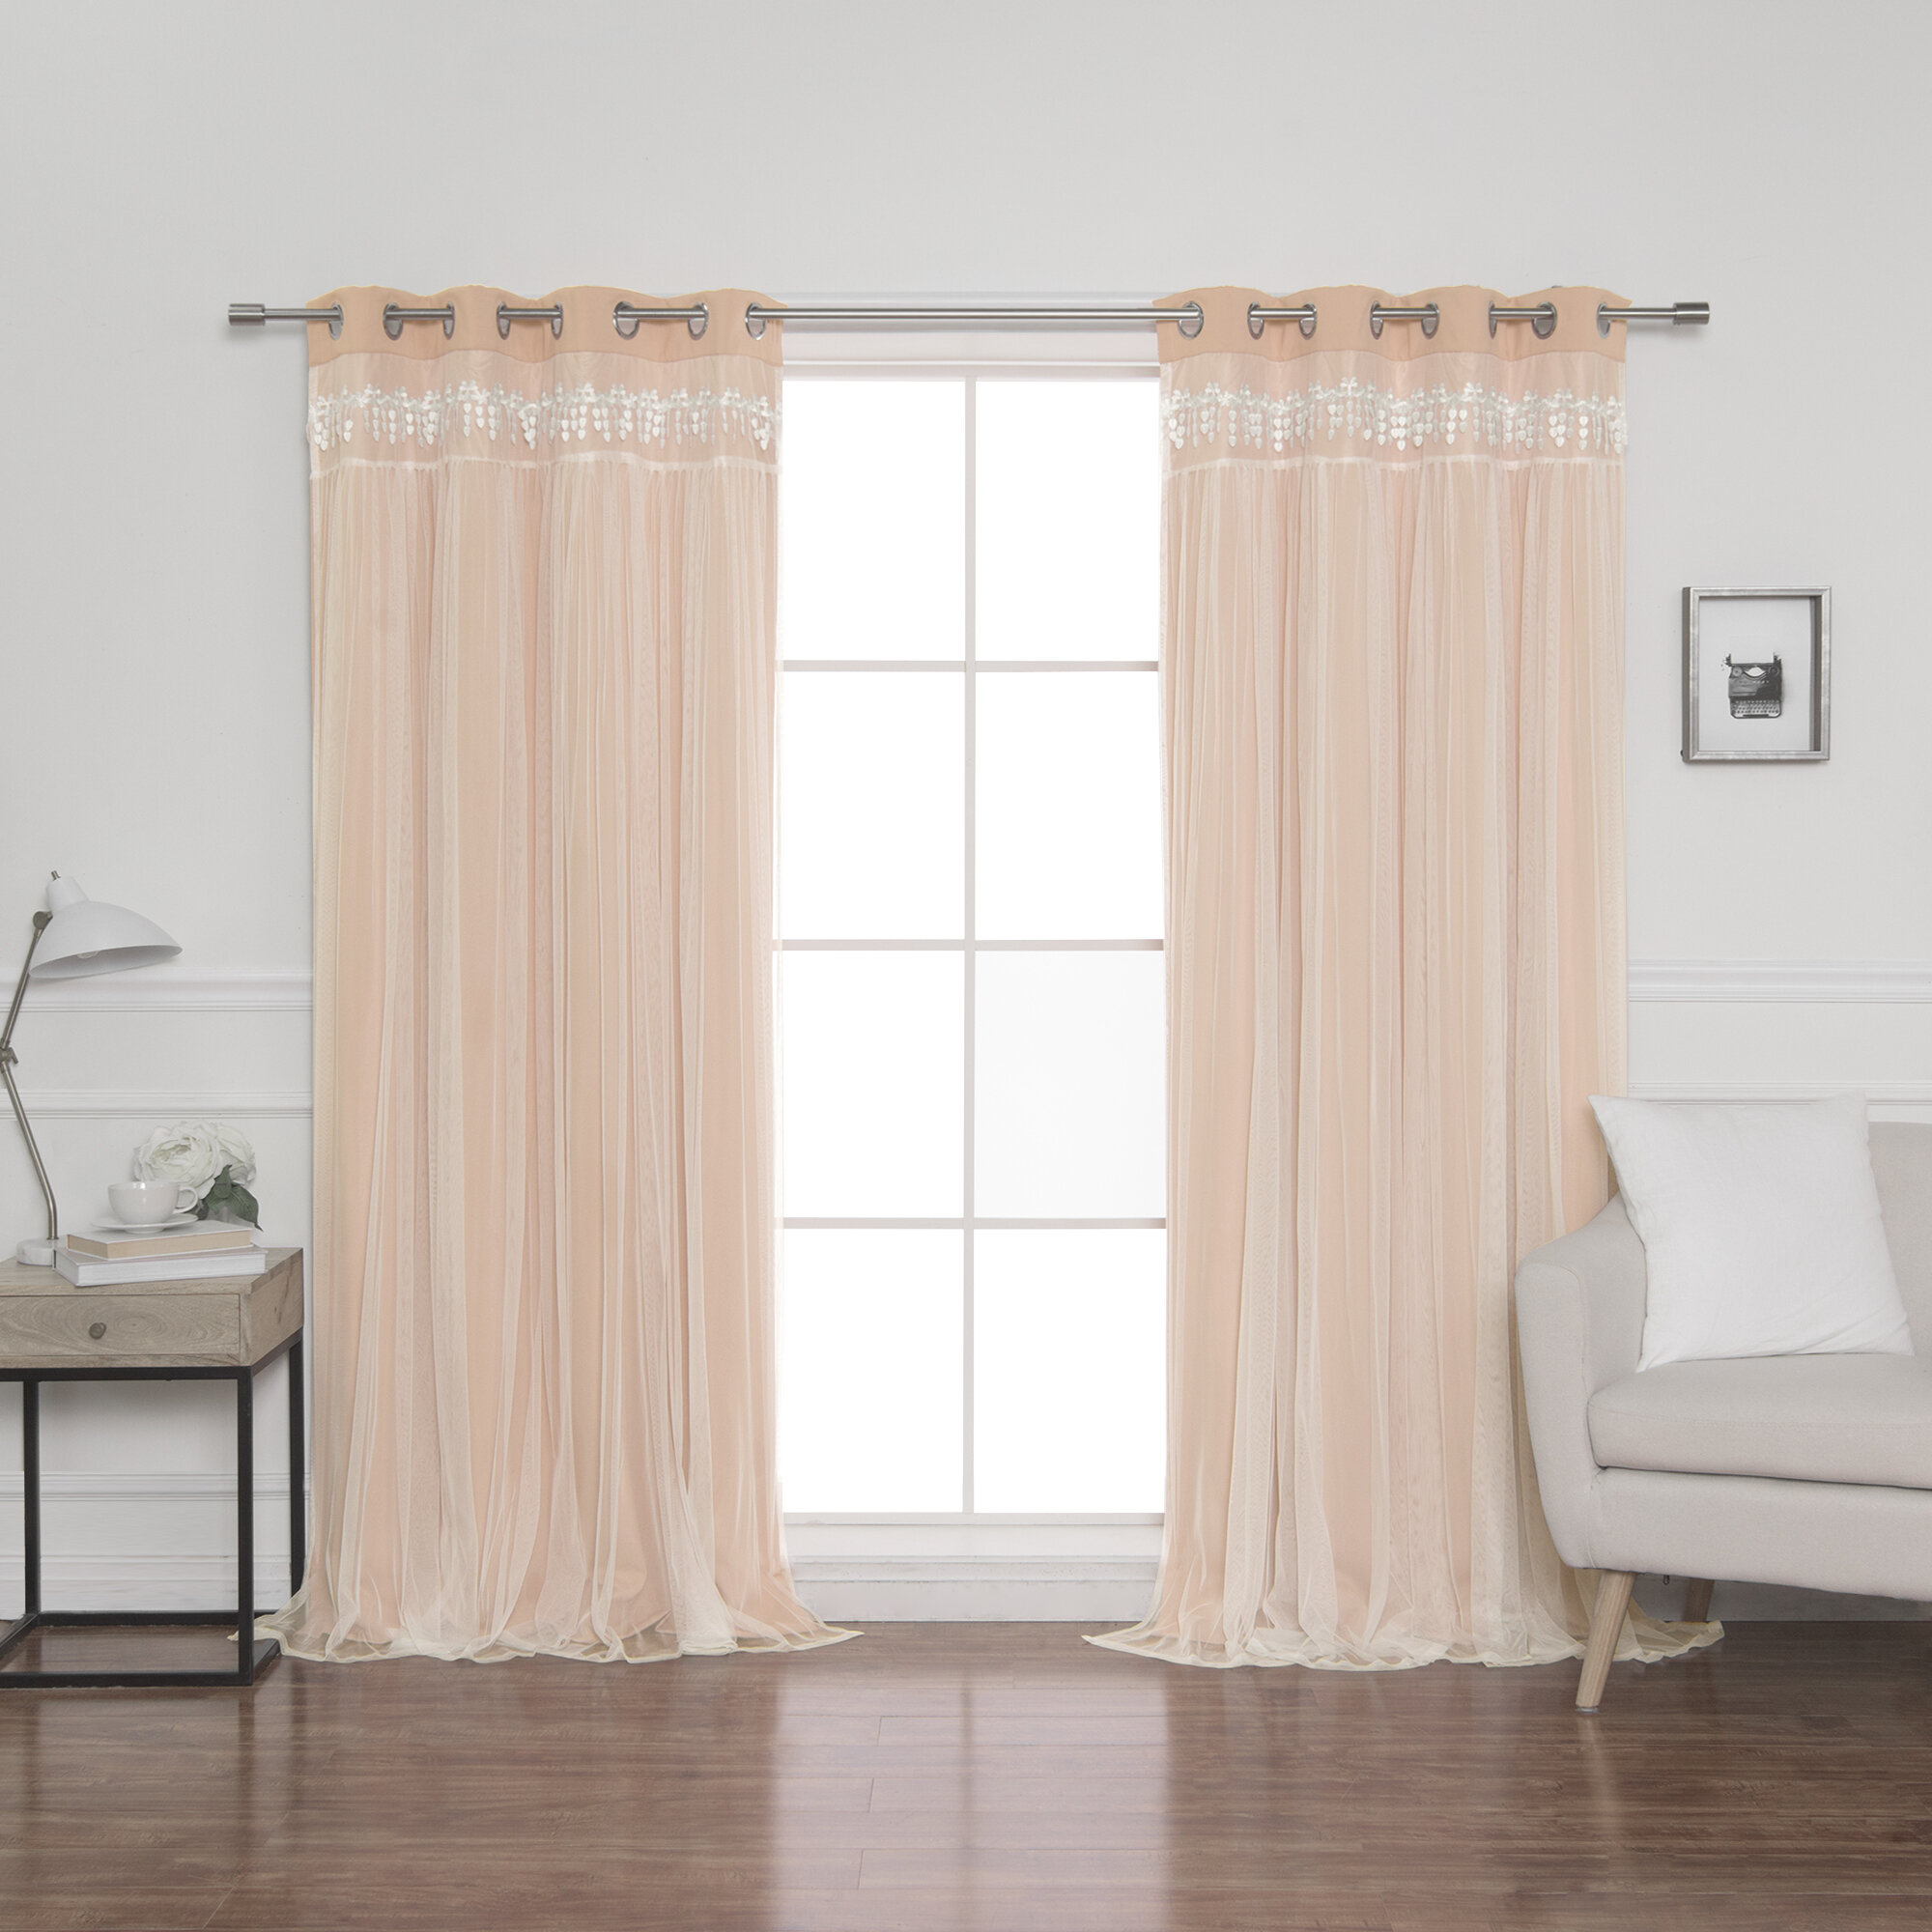 Loar Solid Blackout Thermal Grommet Curtain Panels Intended For Blackout Grommet Curtain Panels (View 18 of 20)